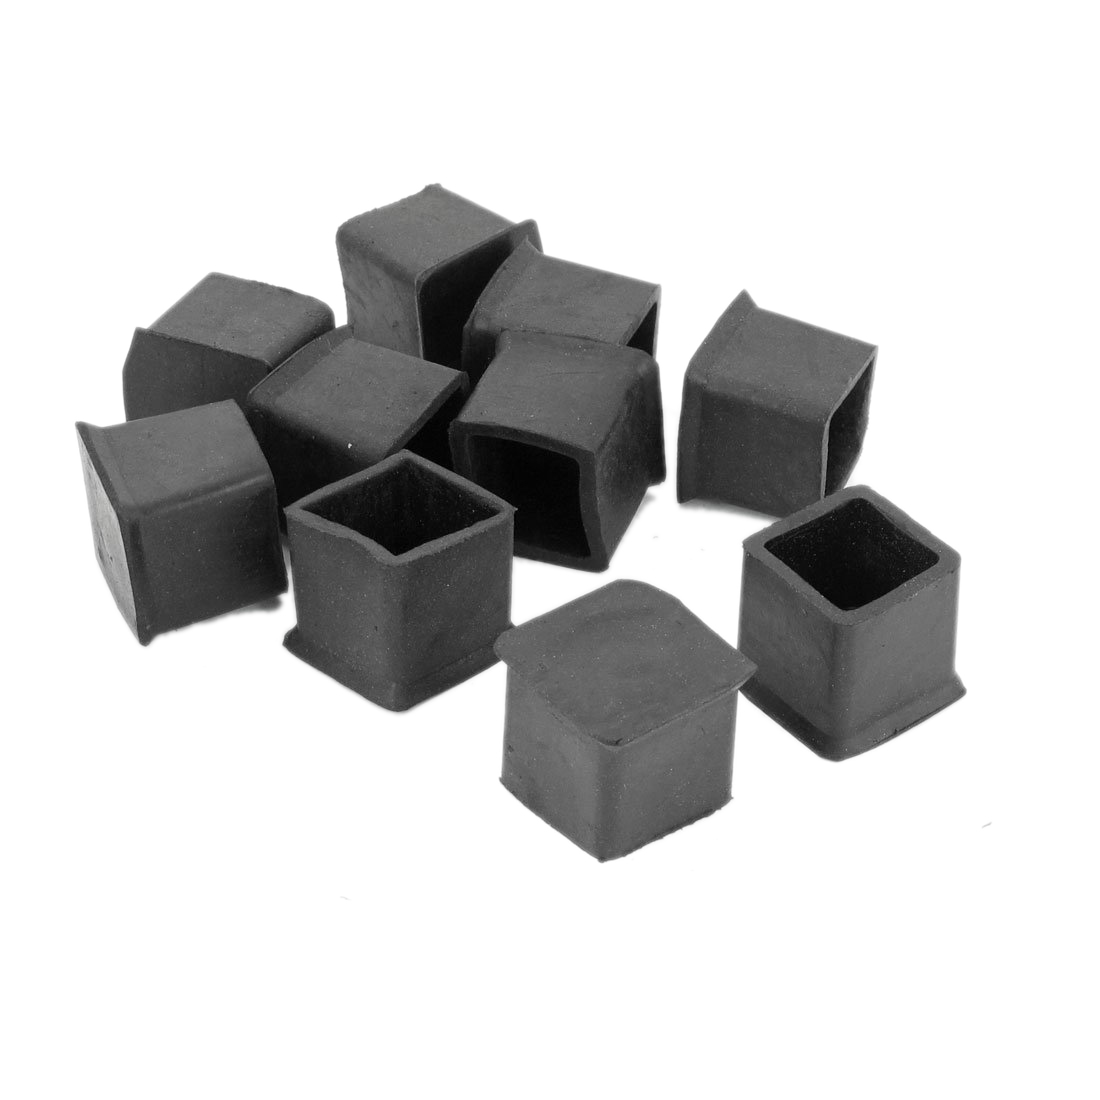 Wholesale 5* 10 Pcs Black Rubber 25mm x 25mm Furniture Chair Legs Covers Protectors